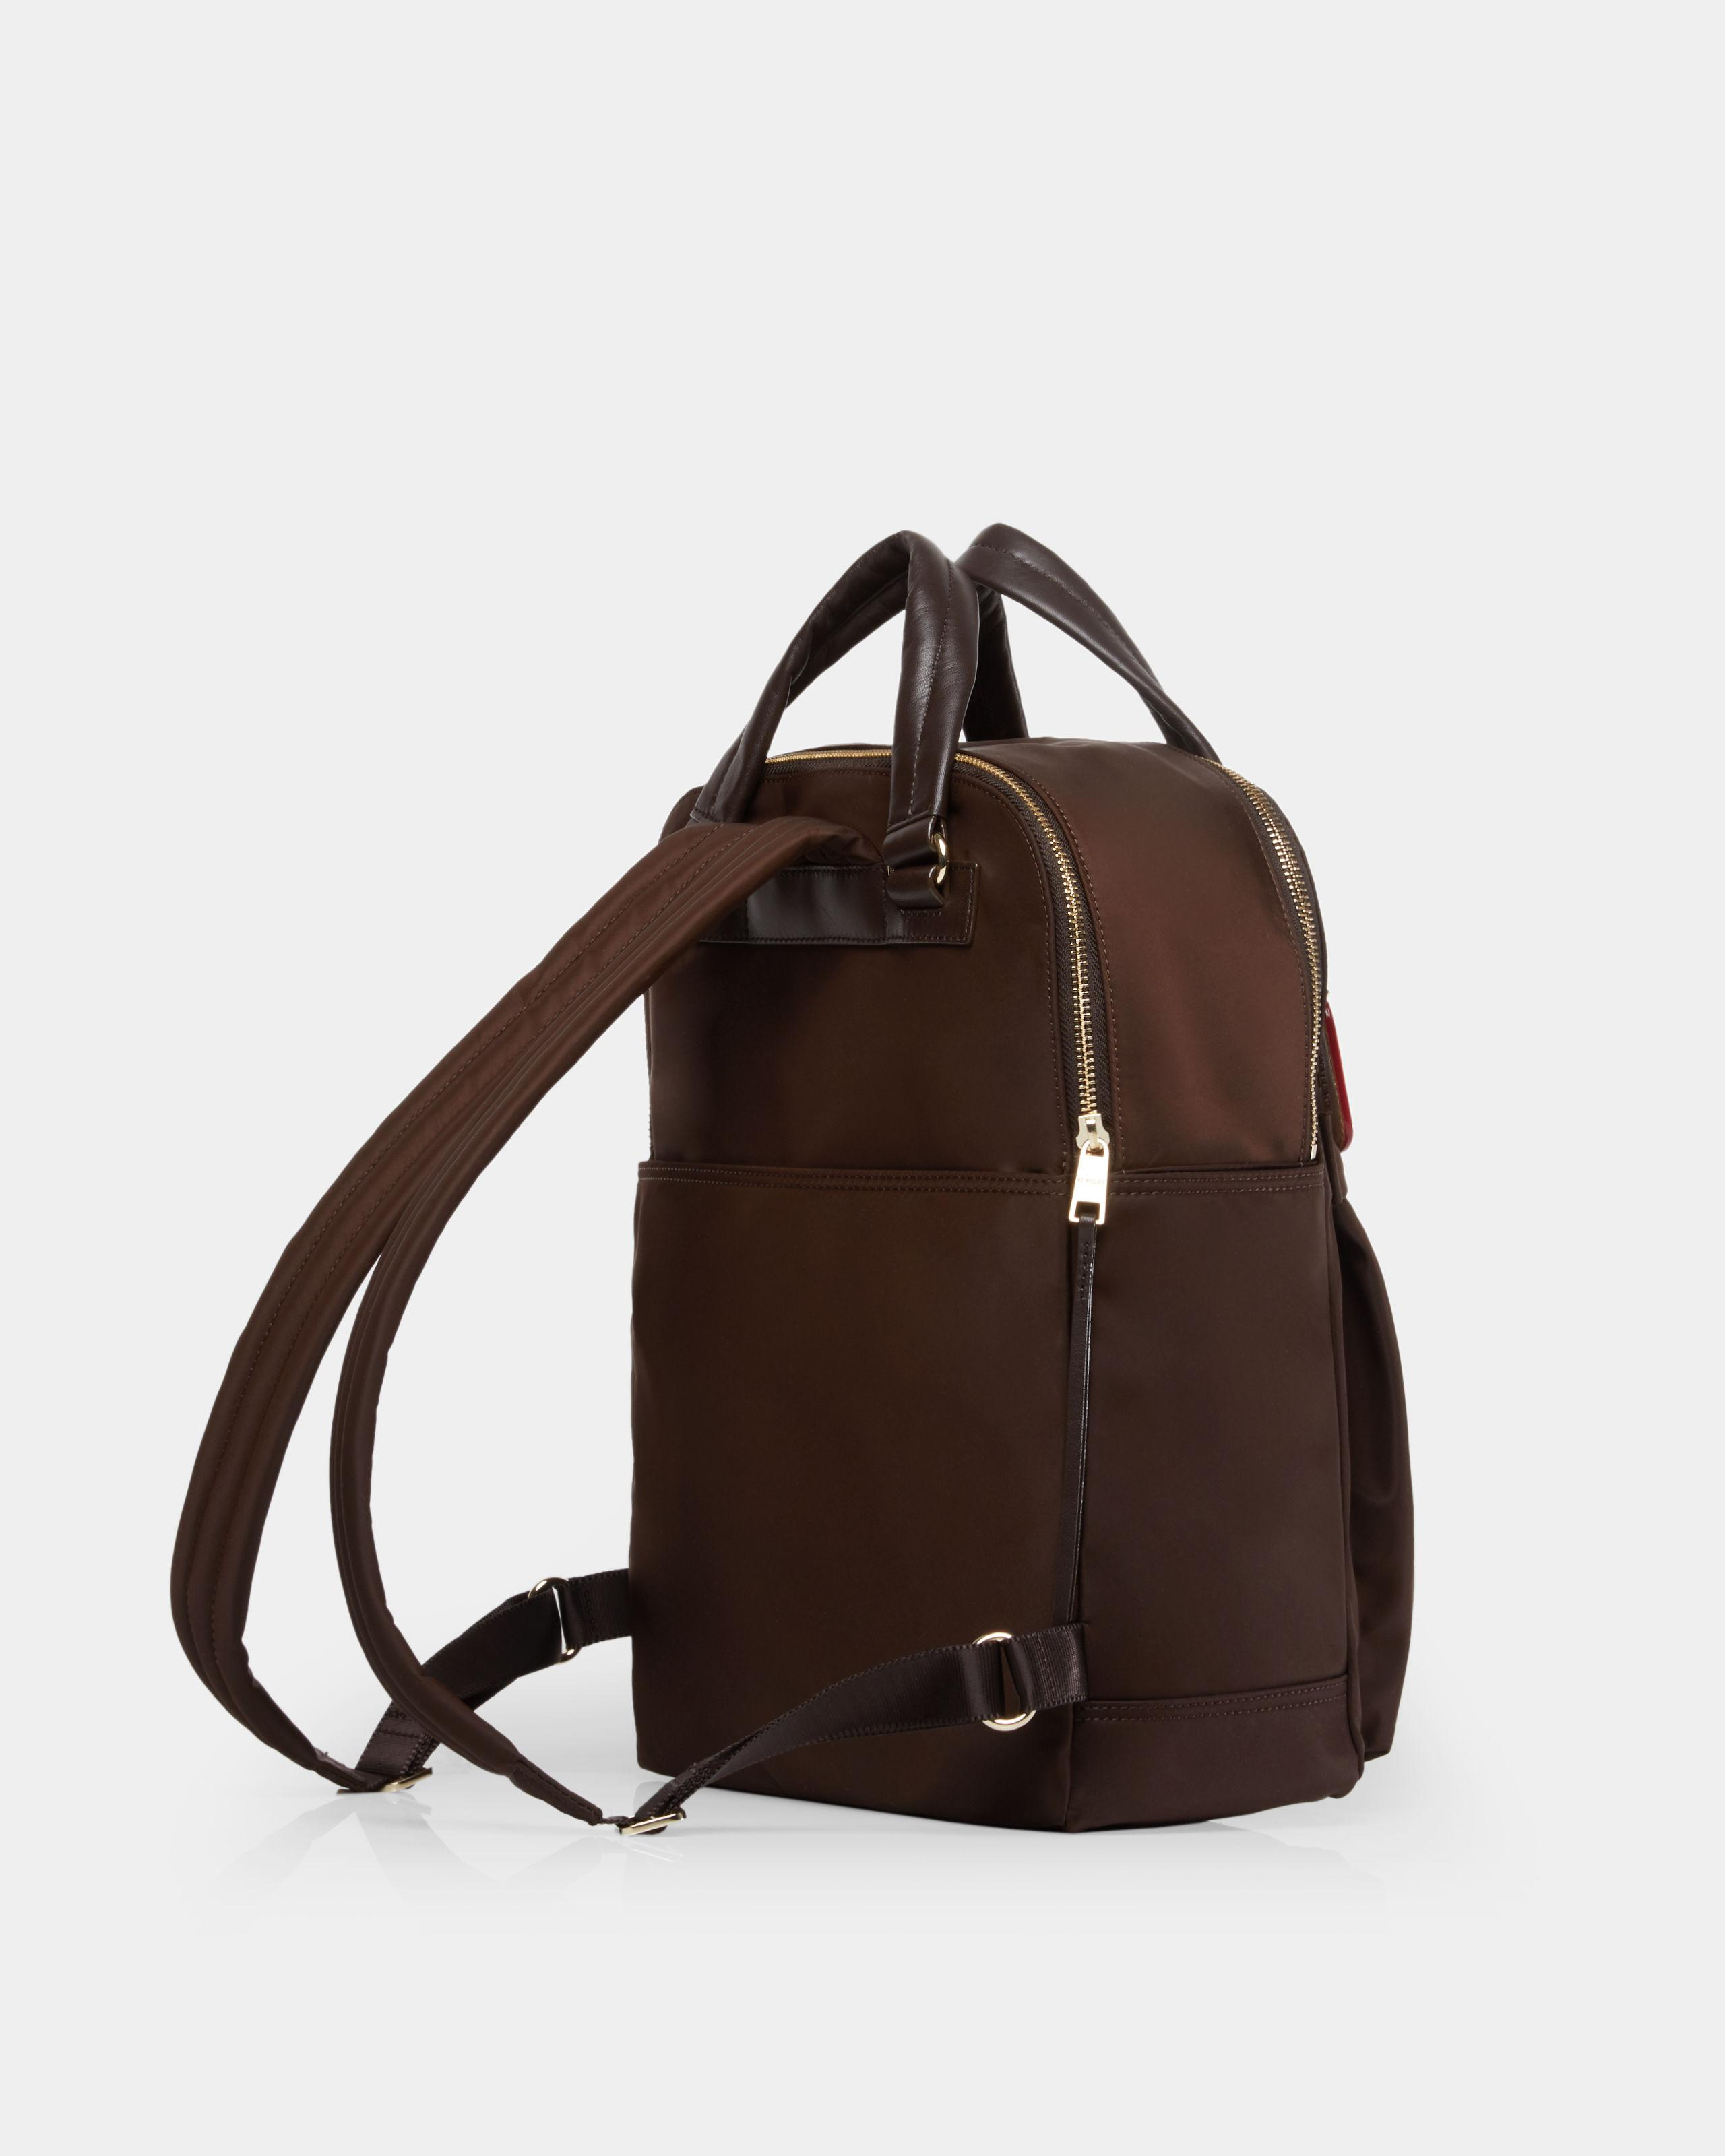 ab10a8688462 Lyst - Mz Wallace Chocolate Jordan Backpack in Brown